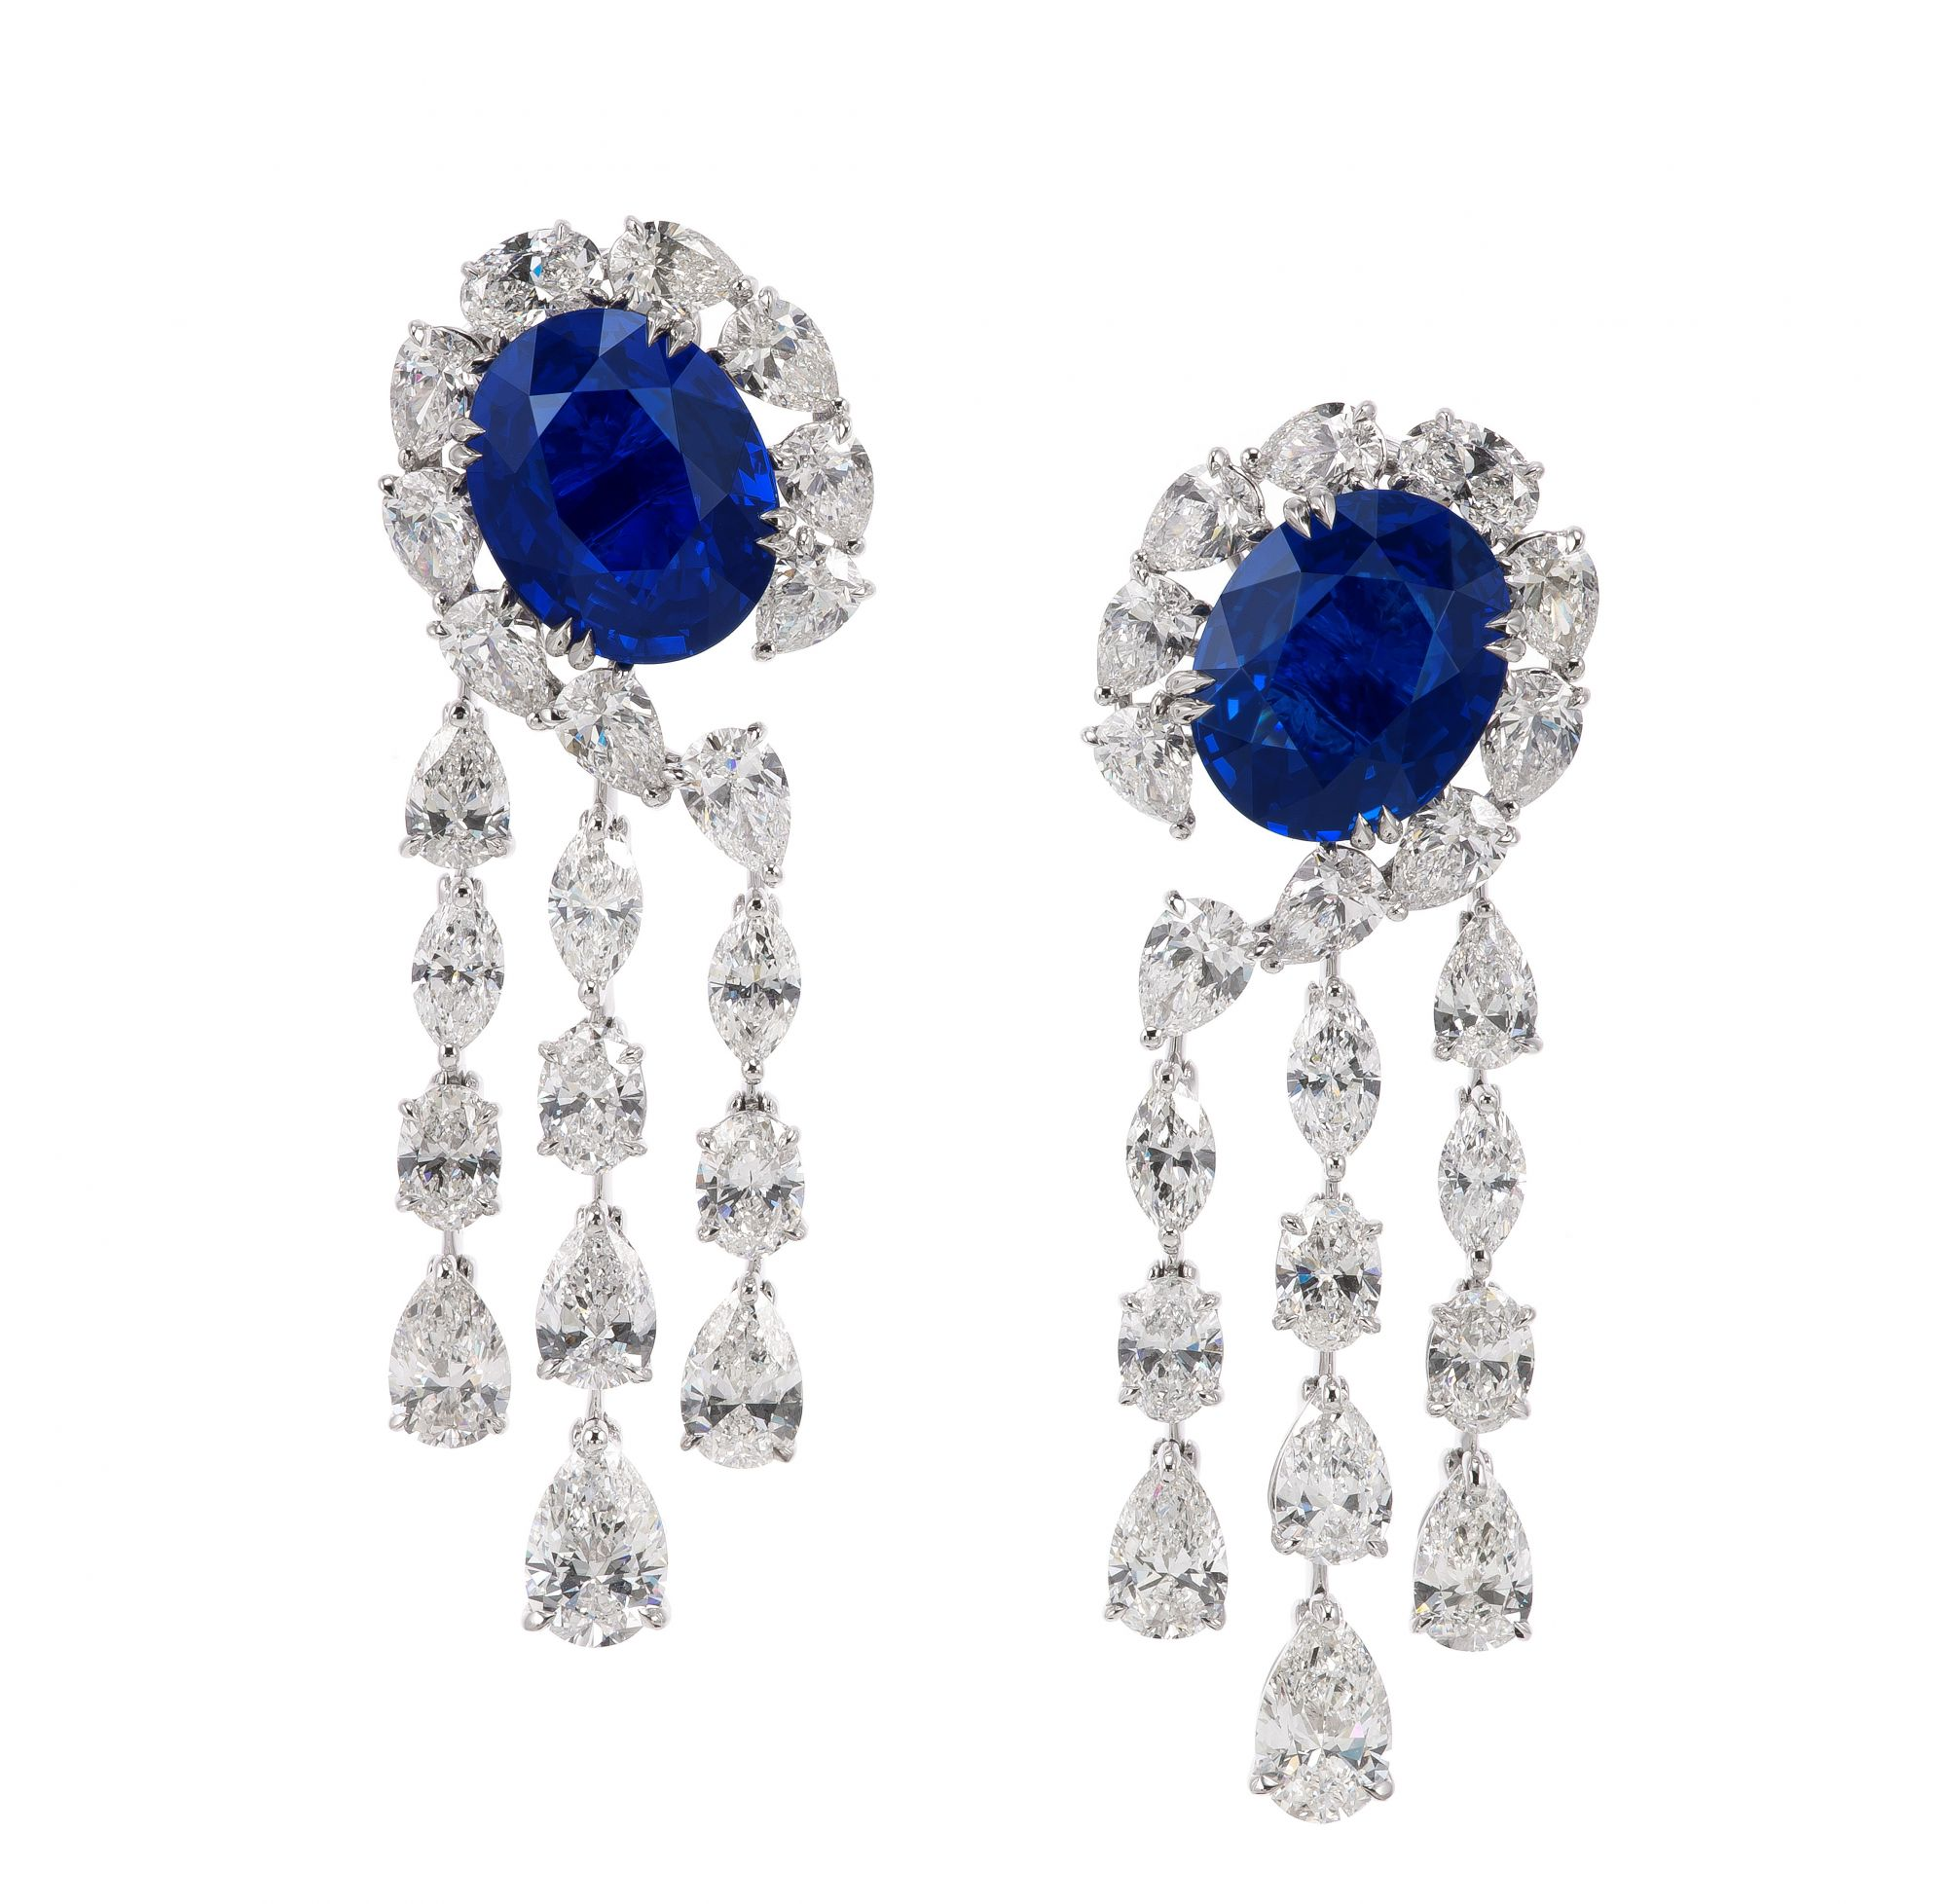 Earrings with oval no-heat Sri Lankan sapphires totalling almost 17ct